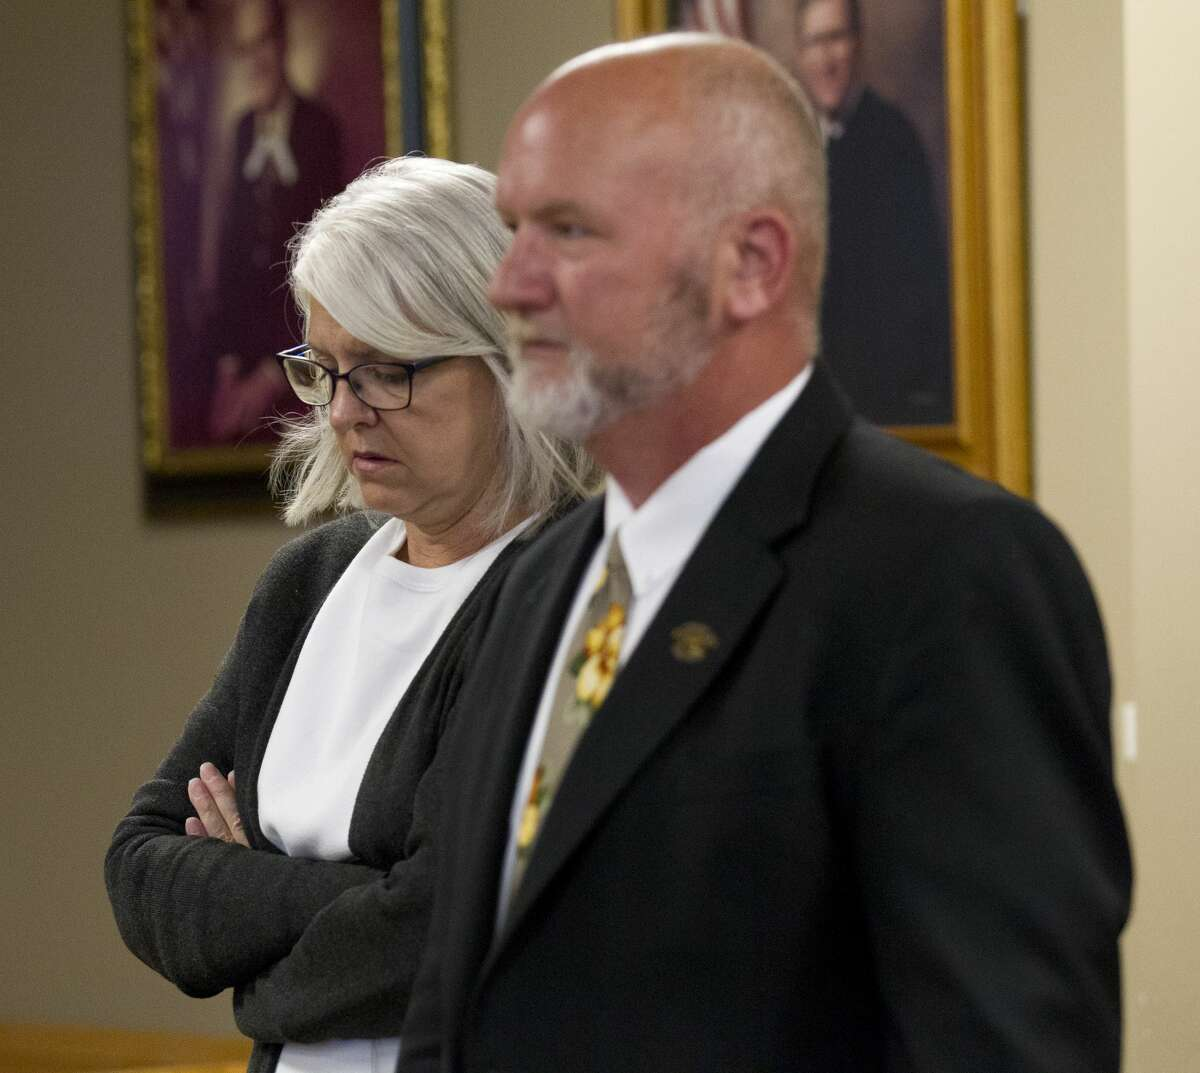 GUILTY: Well-known Montgomery County nonprofit leader Terri Jaggers pleads guilty to charges of theft and misuse of funds from Montgomery County-based nonprofit Orphan Care Solutions of Texas to purchase items for her home, fund vacations and purchase jewelry, by Catherine Dominguez.